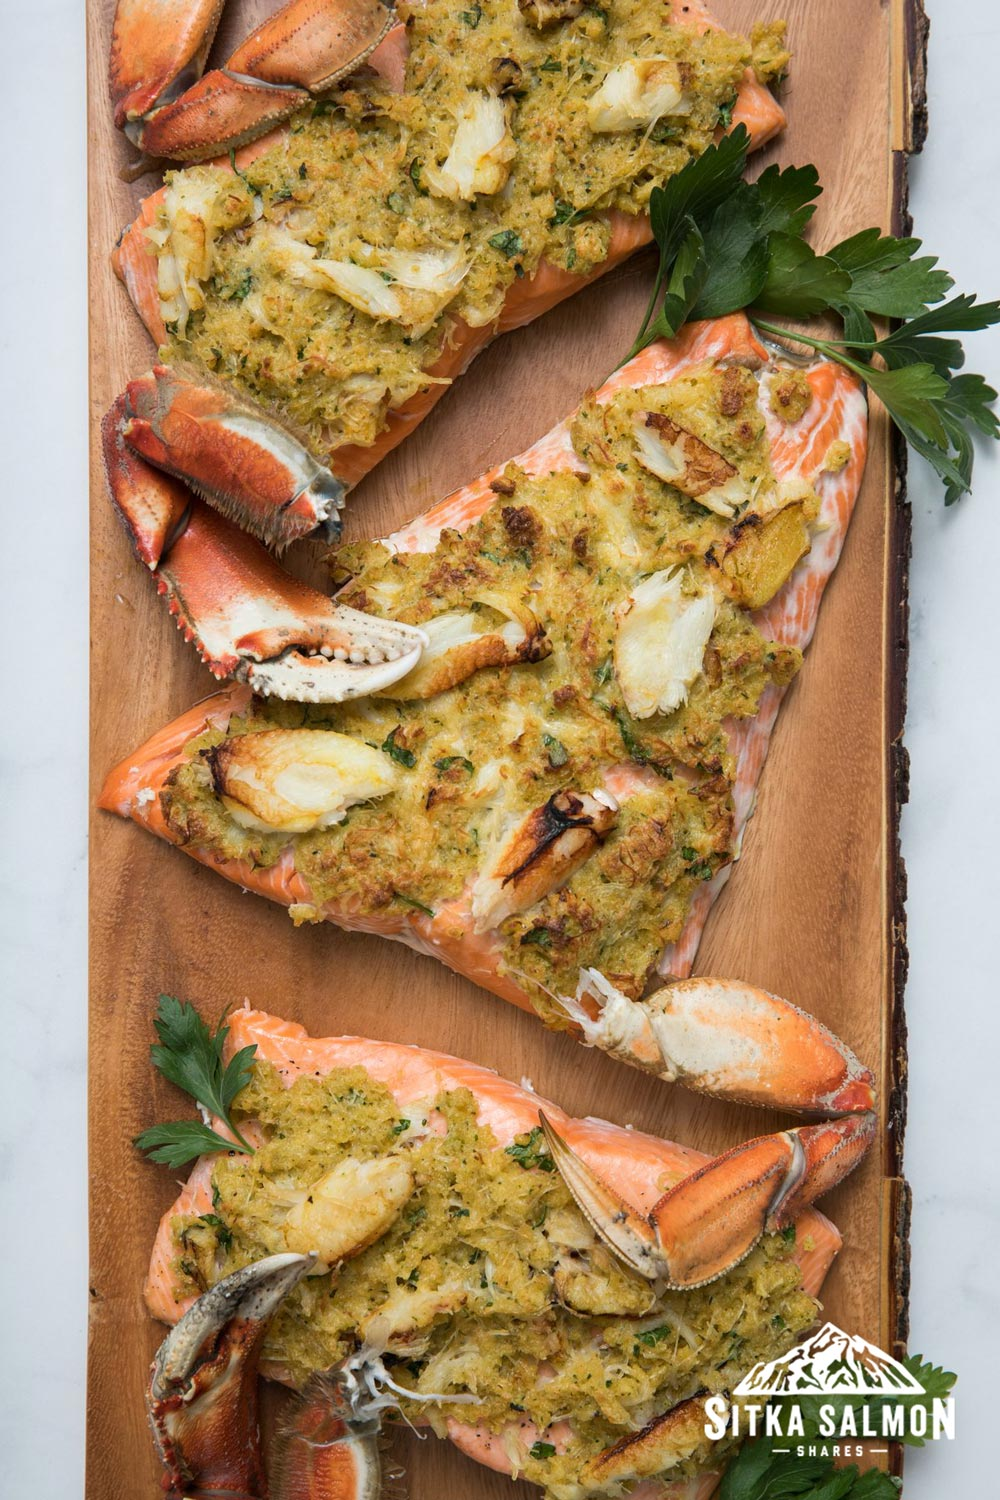 Crab-Crusted Salmon Recipe | Sitka Salmon Shares